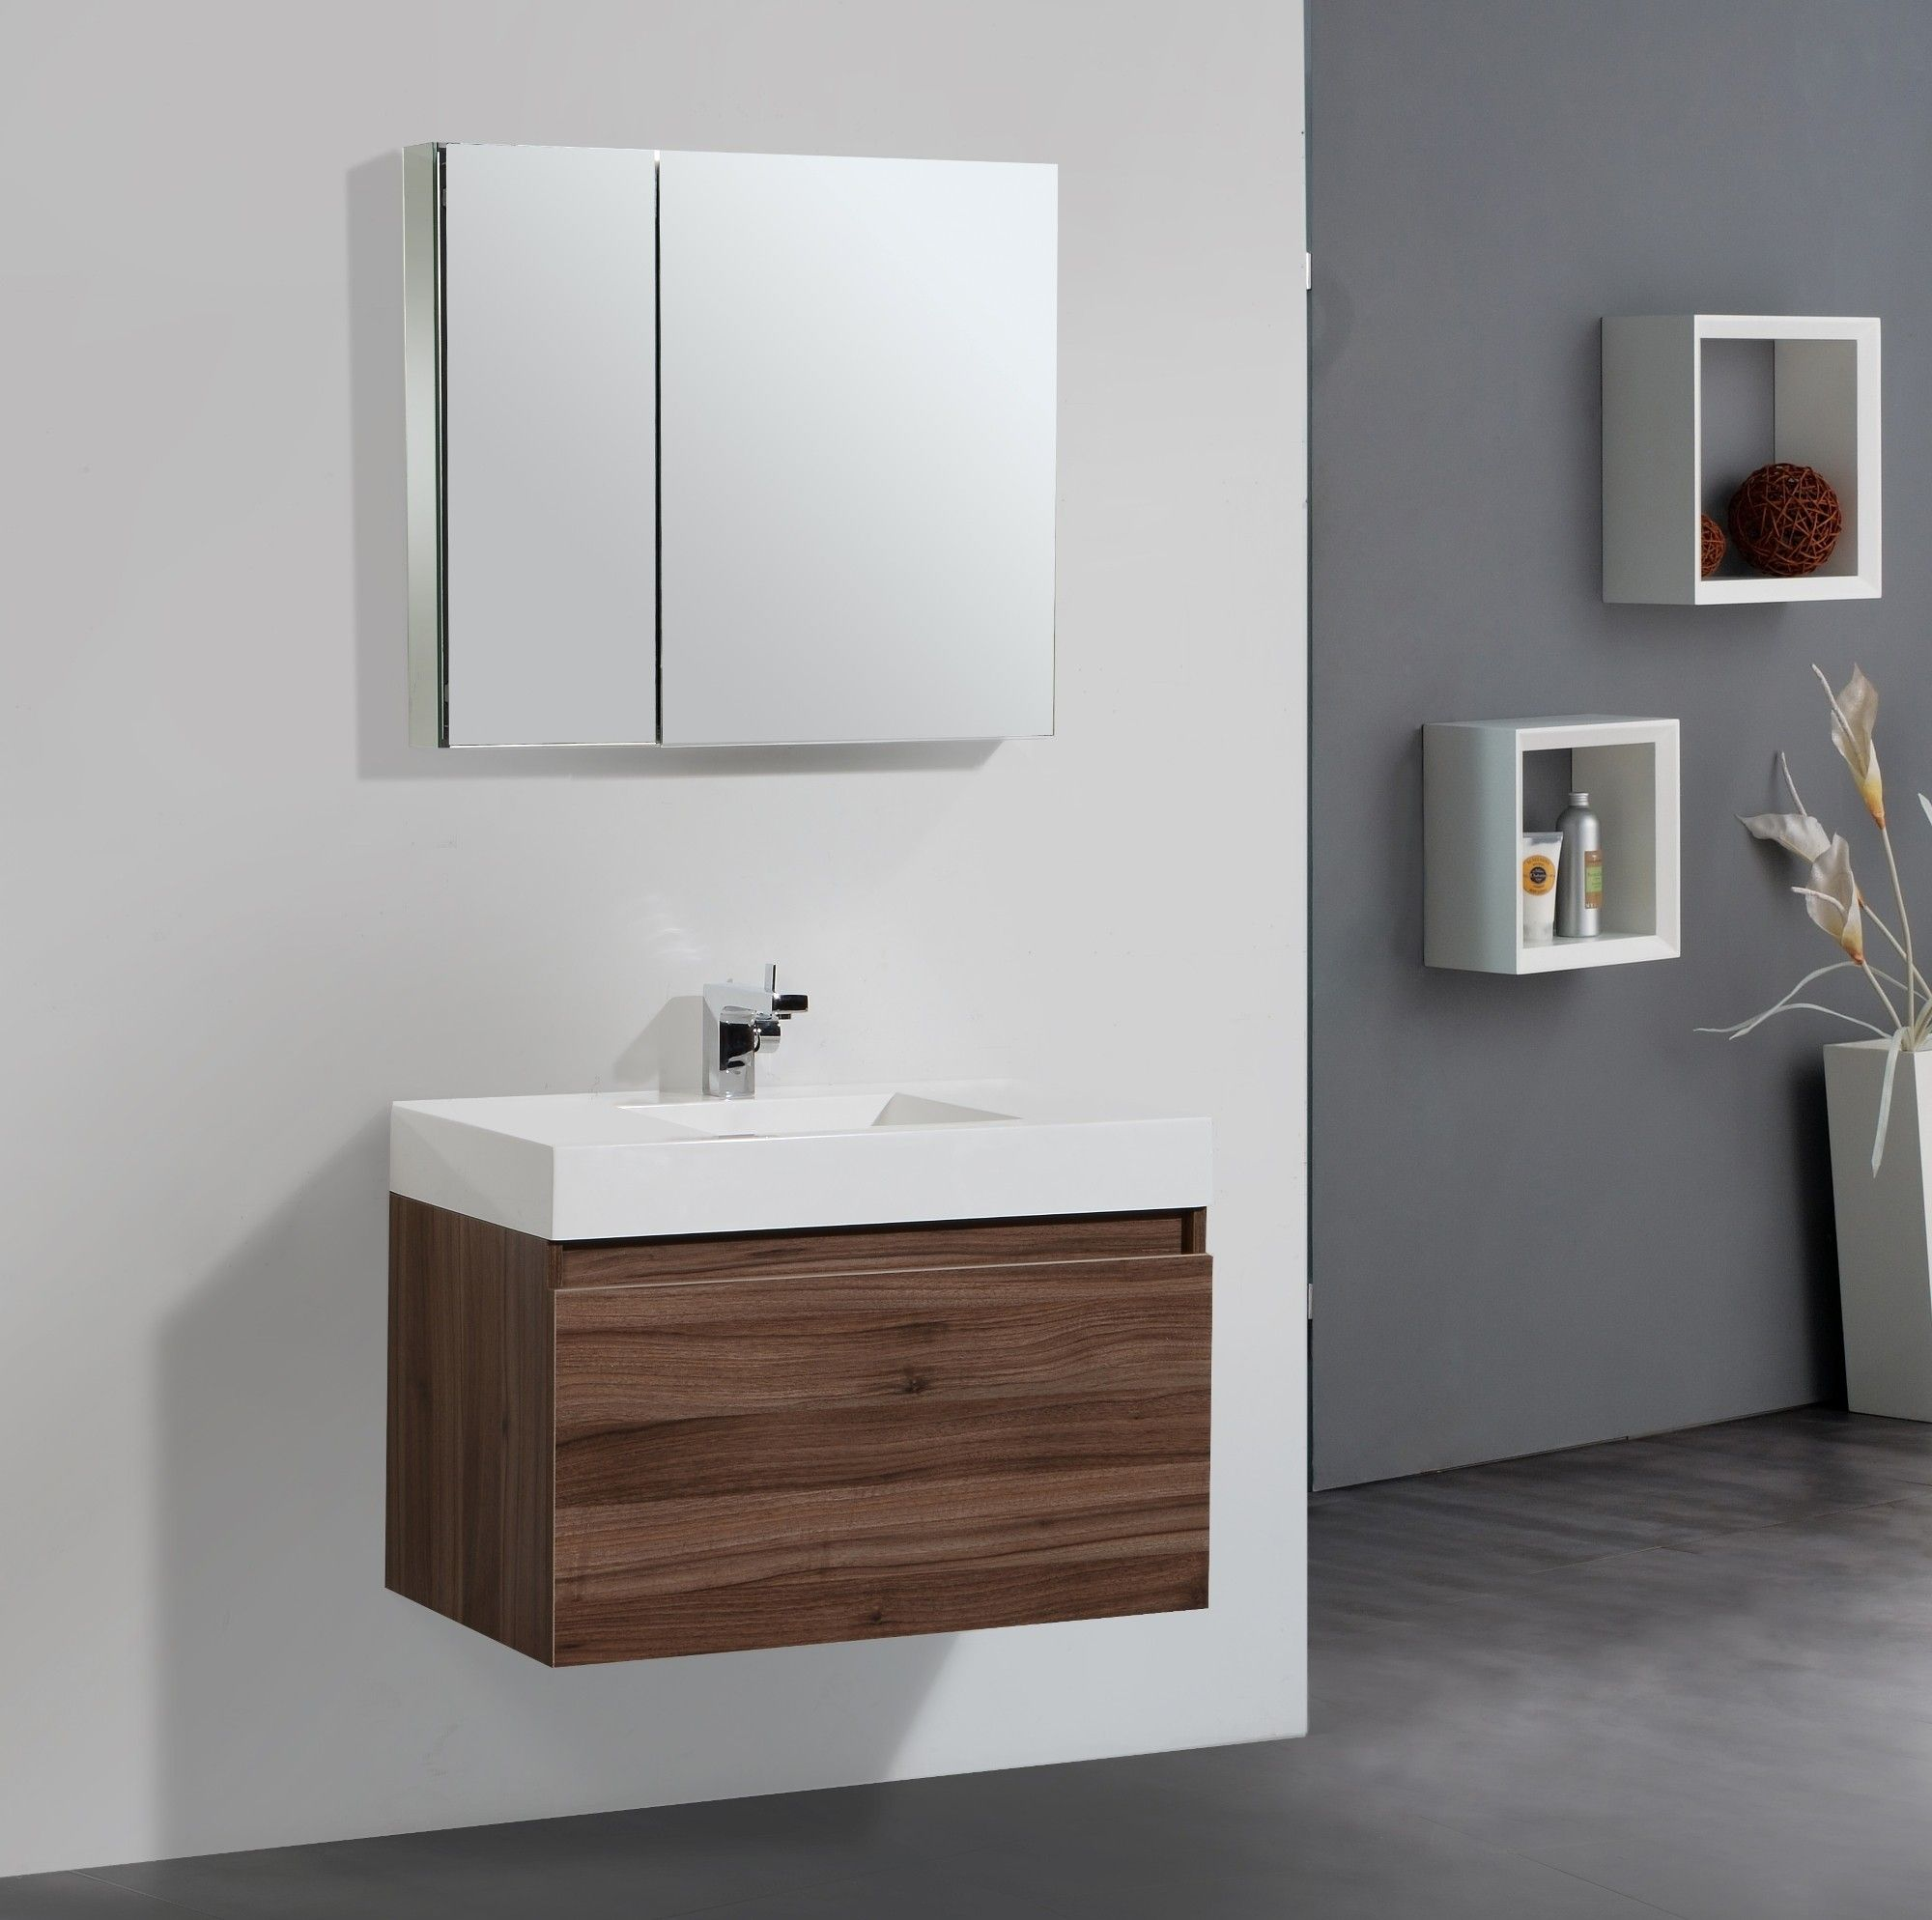 Bathroom Sink Cabinets, Bathroom Vanity Cabinets